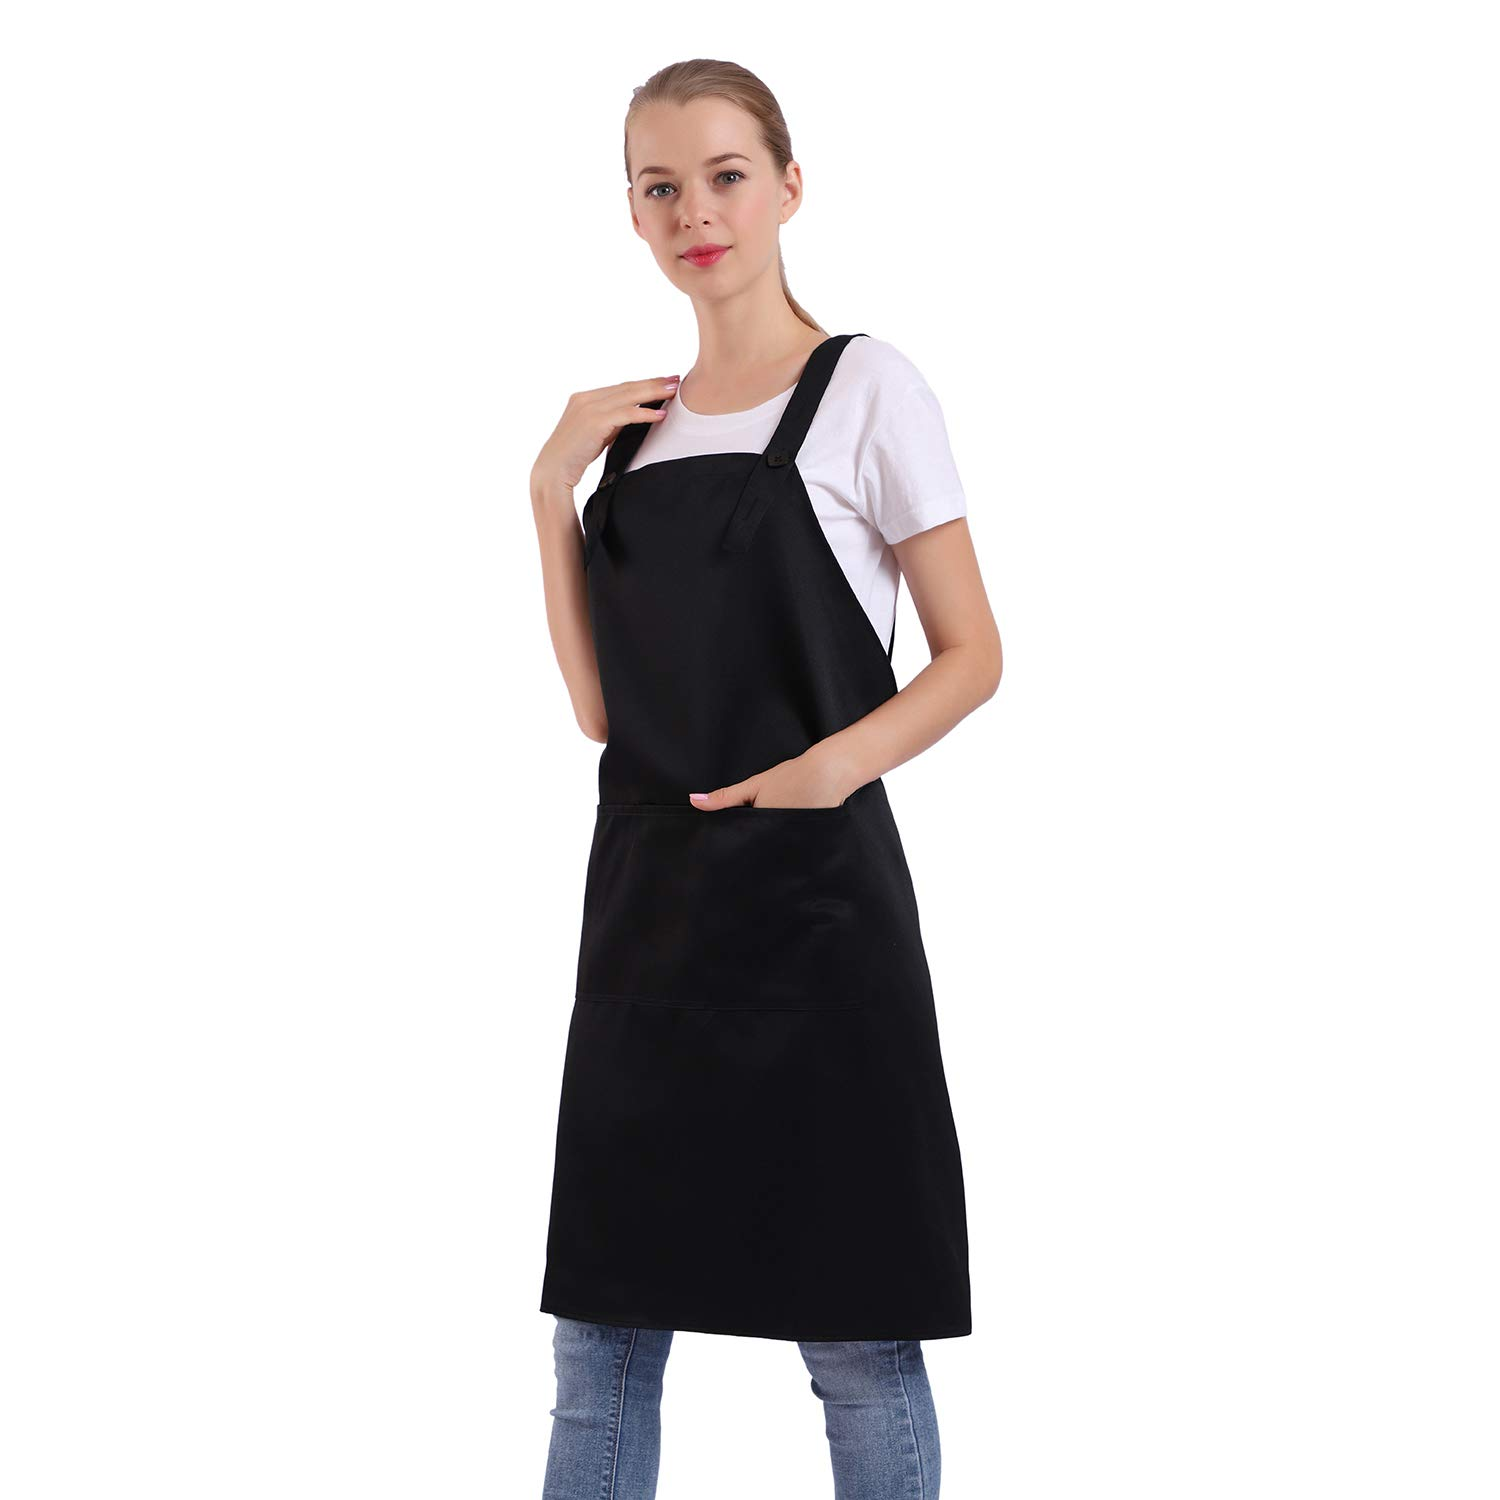 BIGHAS H Style Apron with Pocket for Women, Men Adjustable Large Size Comfortable, Kitchen, Home, Cooking 12 Colors (Black)